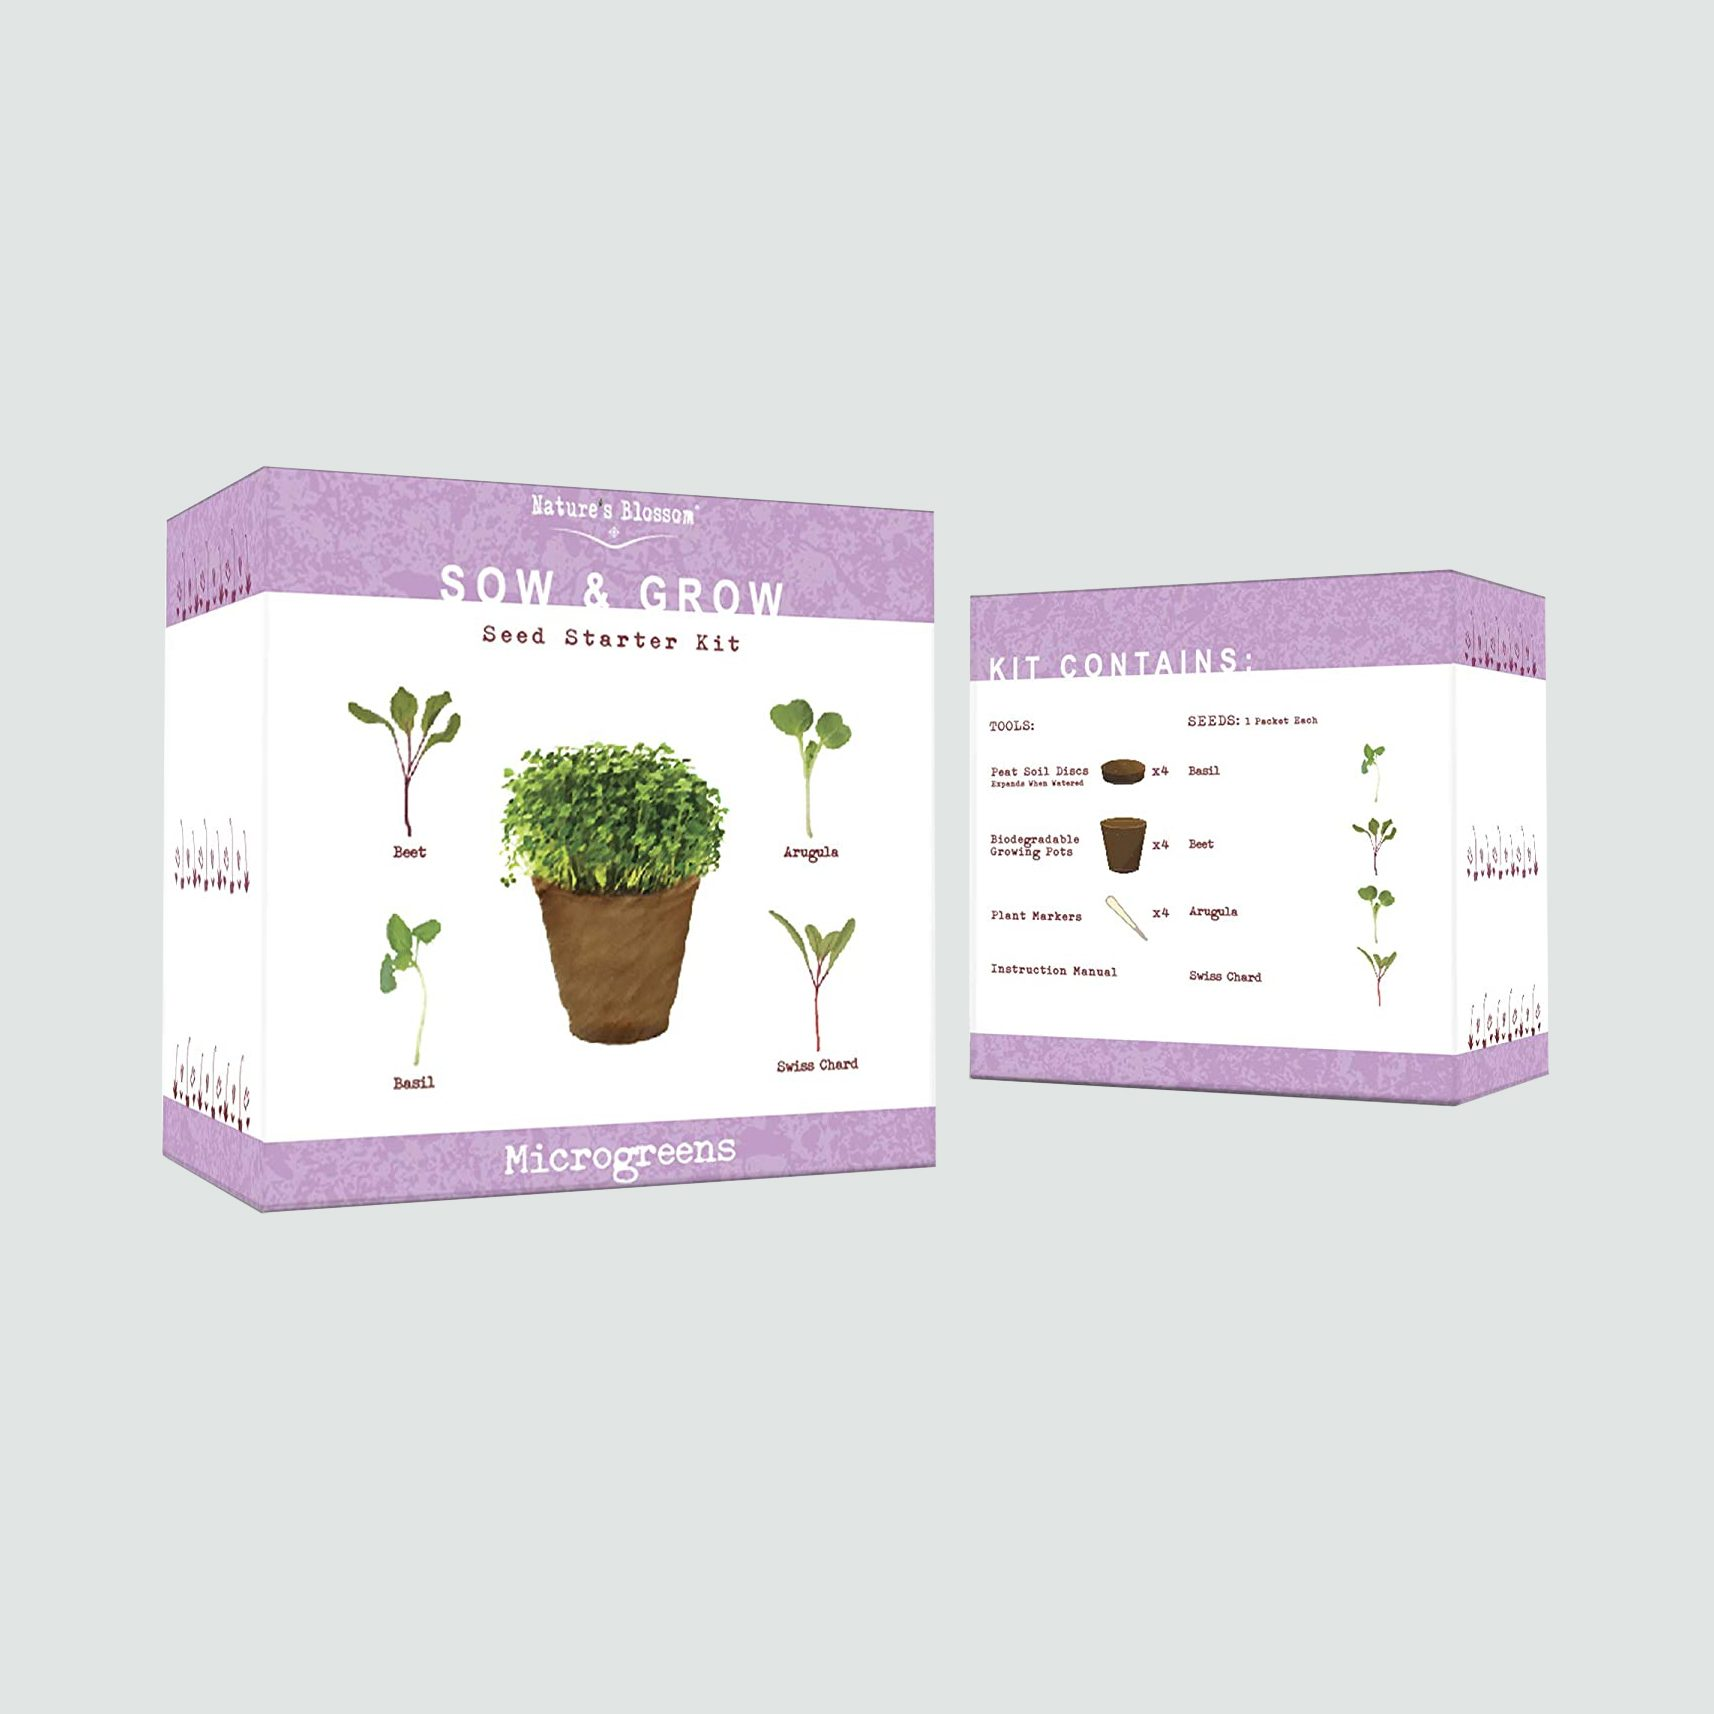 Nature's Blossom Microgreen Sprouting Kit